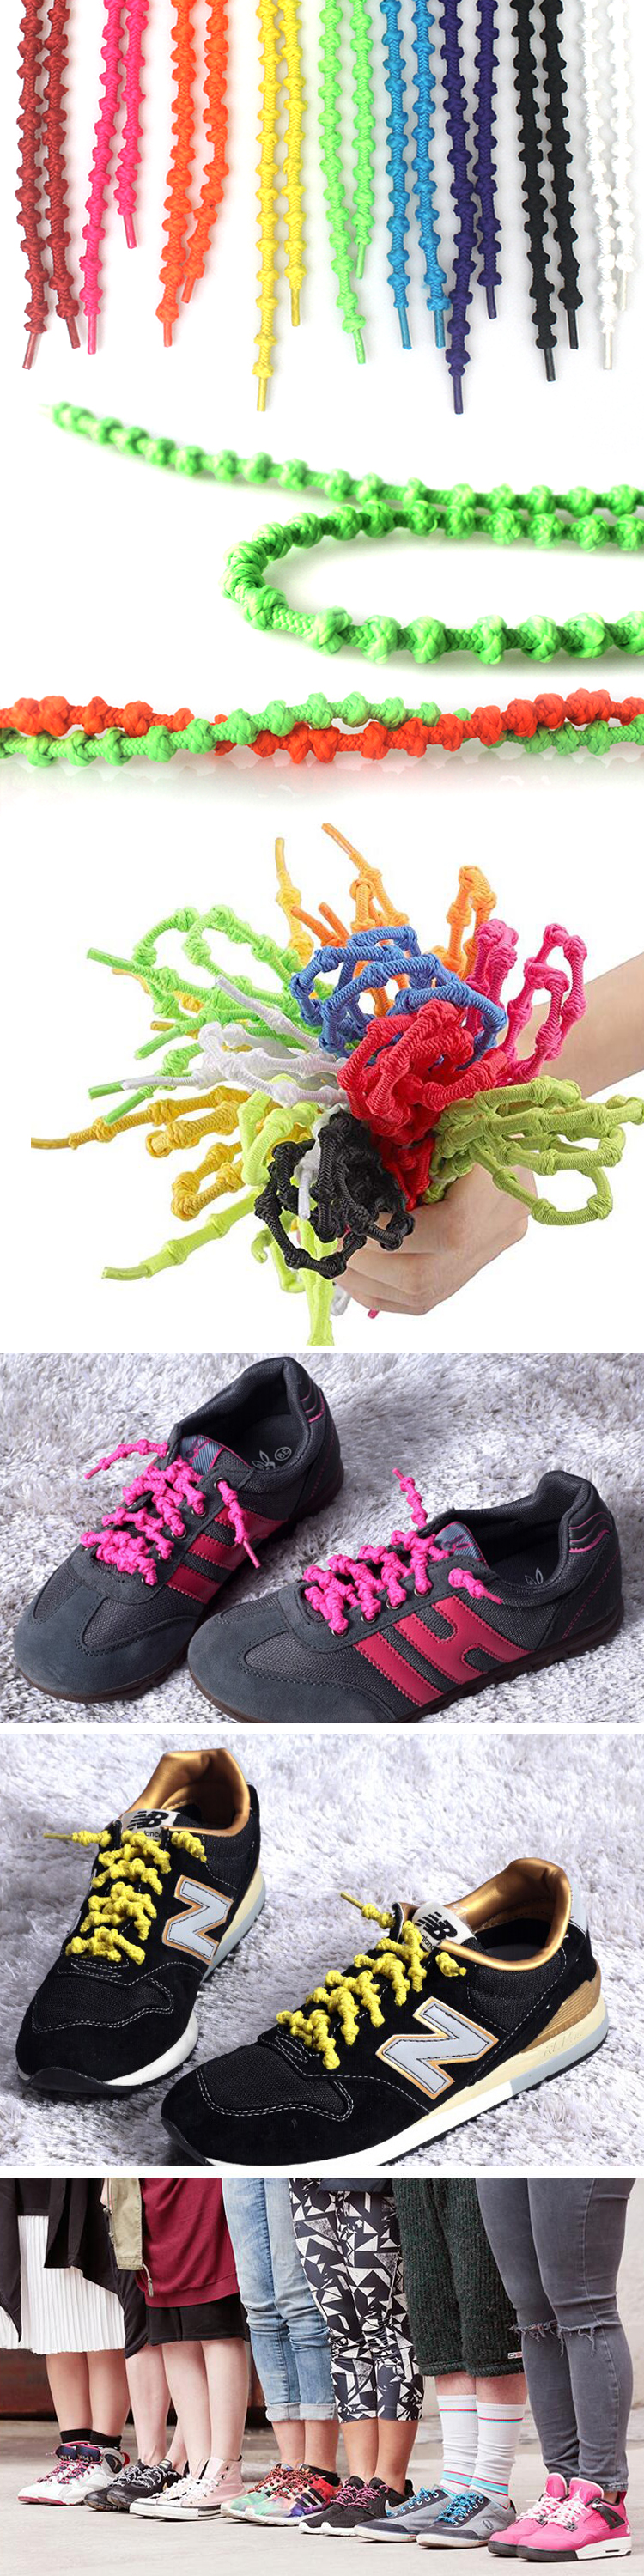 Lazy No Tie Black Elastic Knotted Shoelaces for Marathon